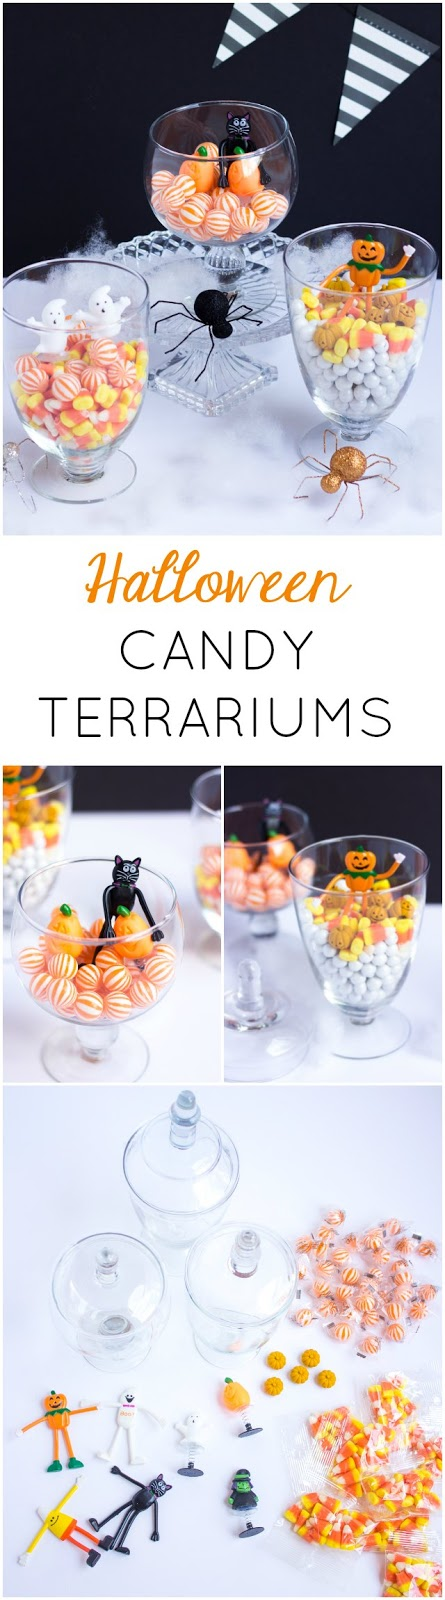 Fill glass jars with candy and figurines to make these cute DIY Halloween Terrariums!